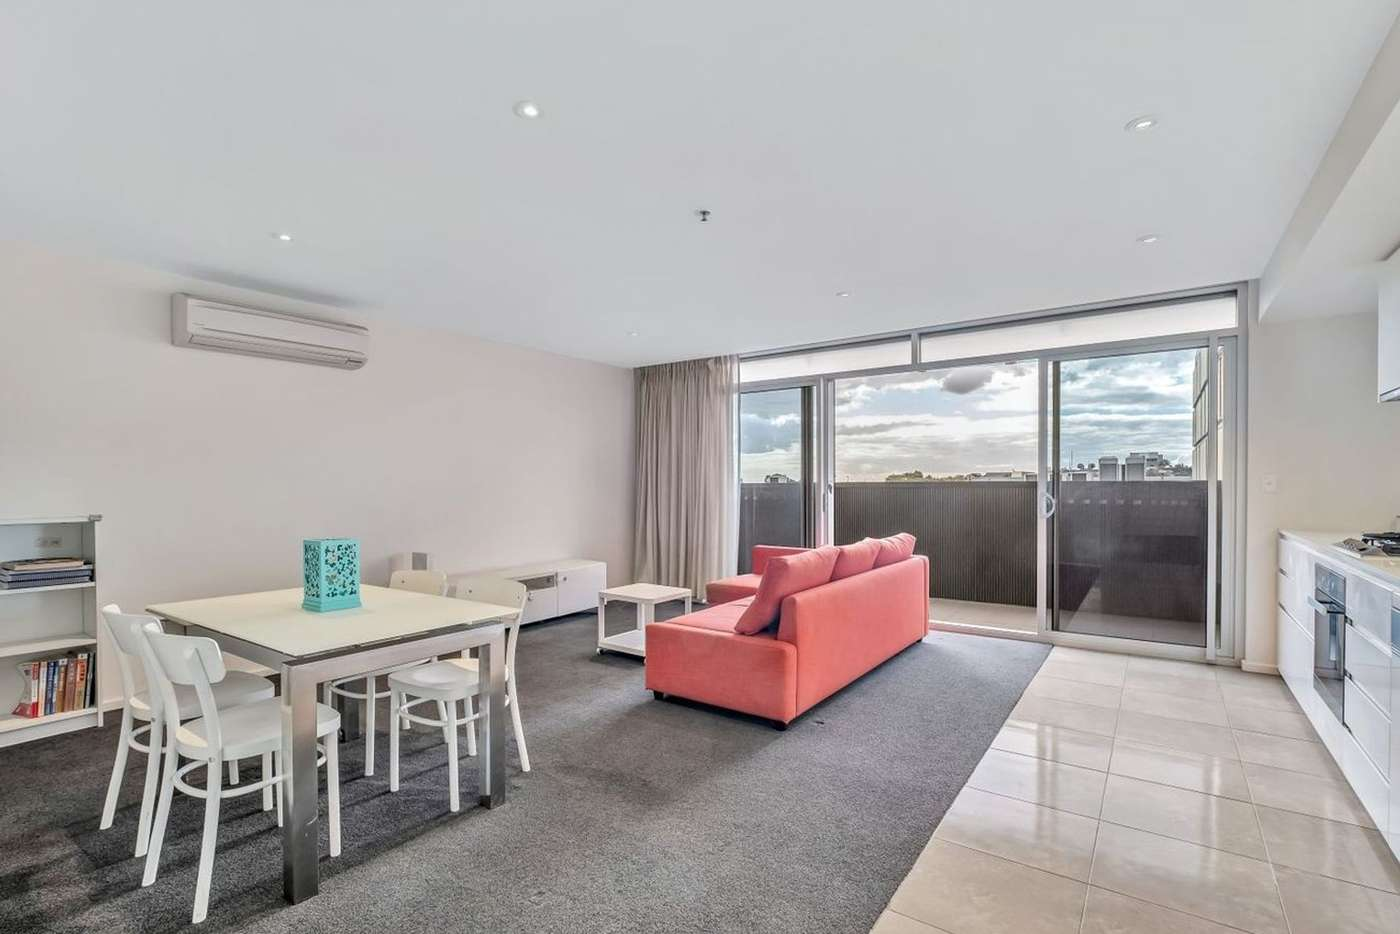 Seventh view of Homely house listing, 300/271-281 Gouger Street, Adelaide SA 5000